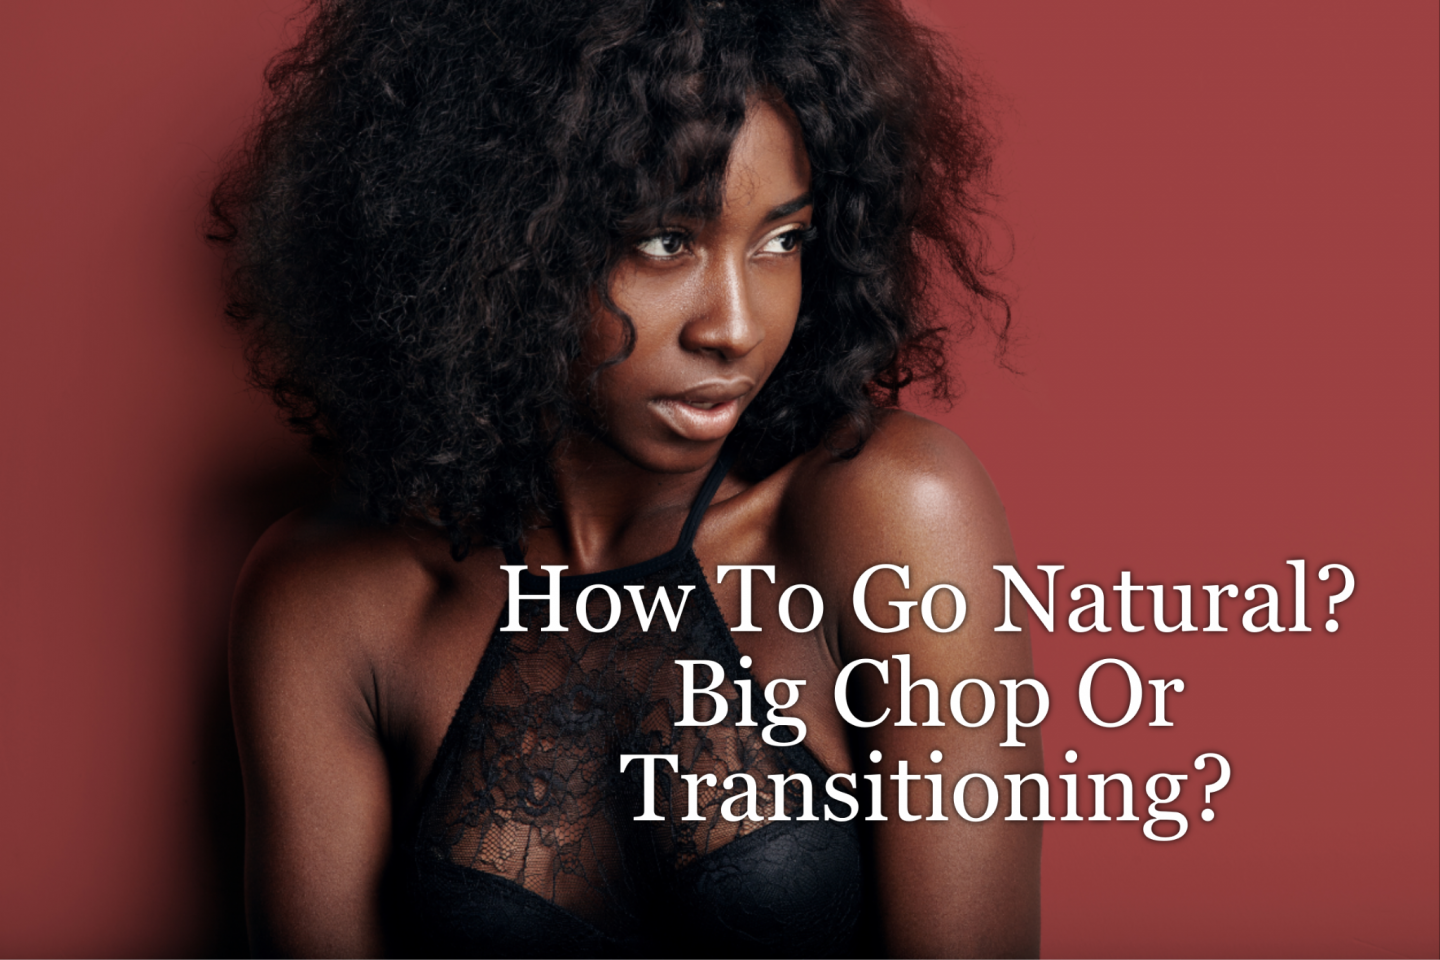 How To Go Natural? Big Chop Or Transitioning? There Is More Way! We break down the tips and tricks to going natural the right ways.